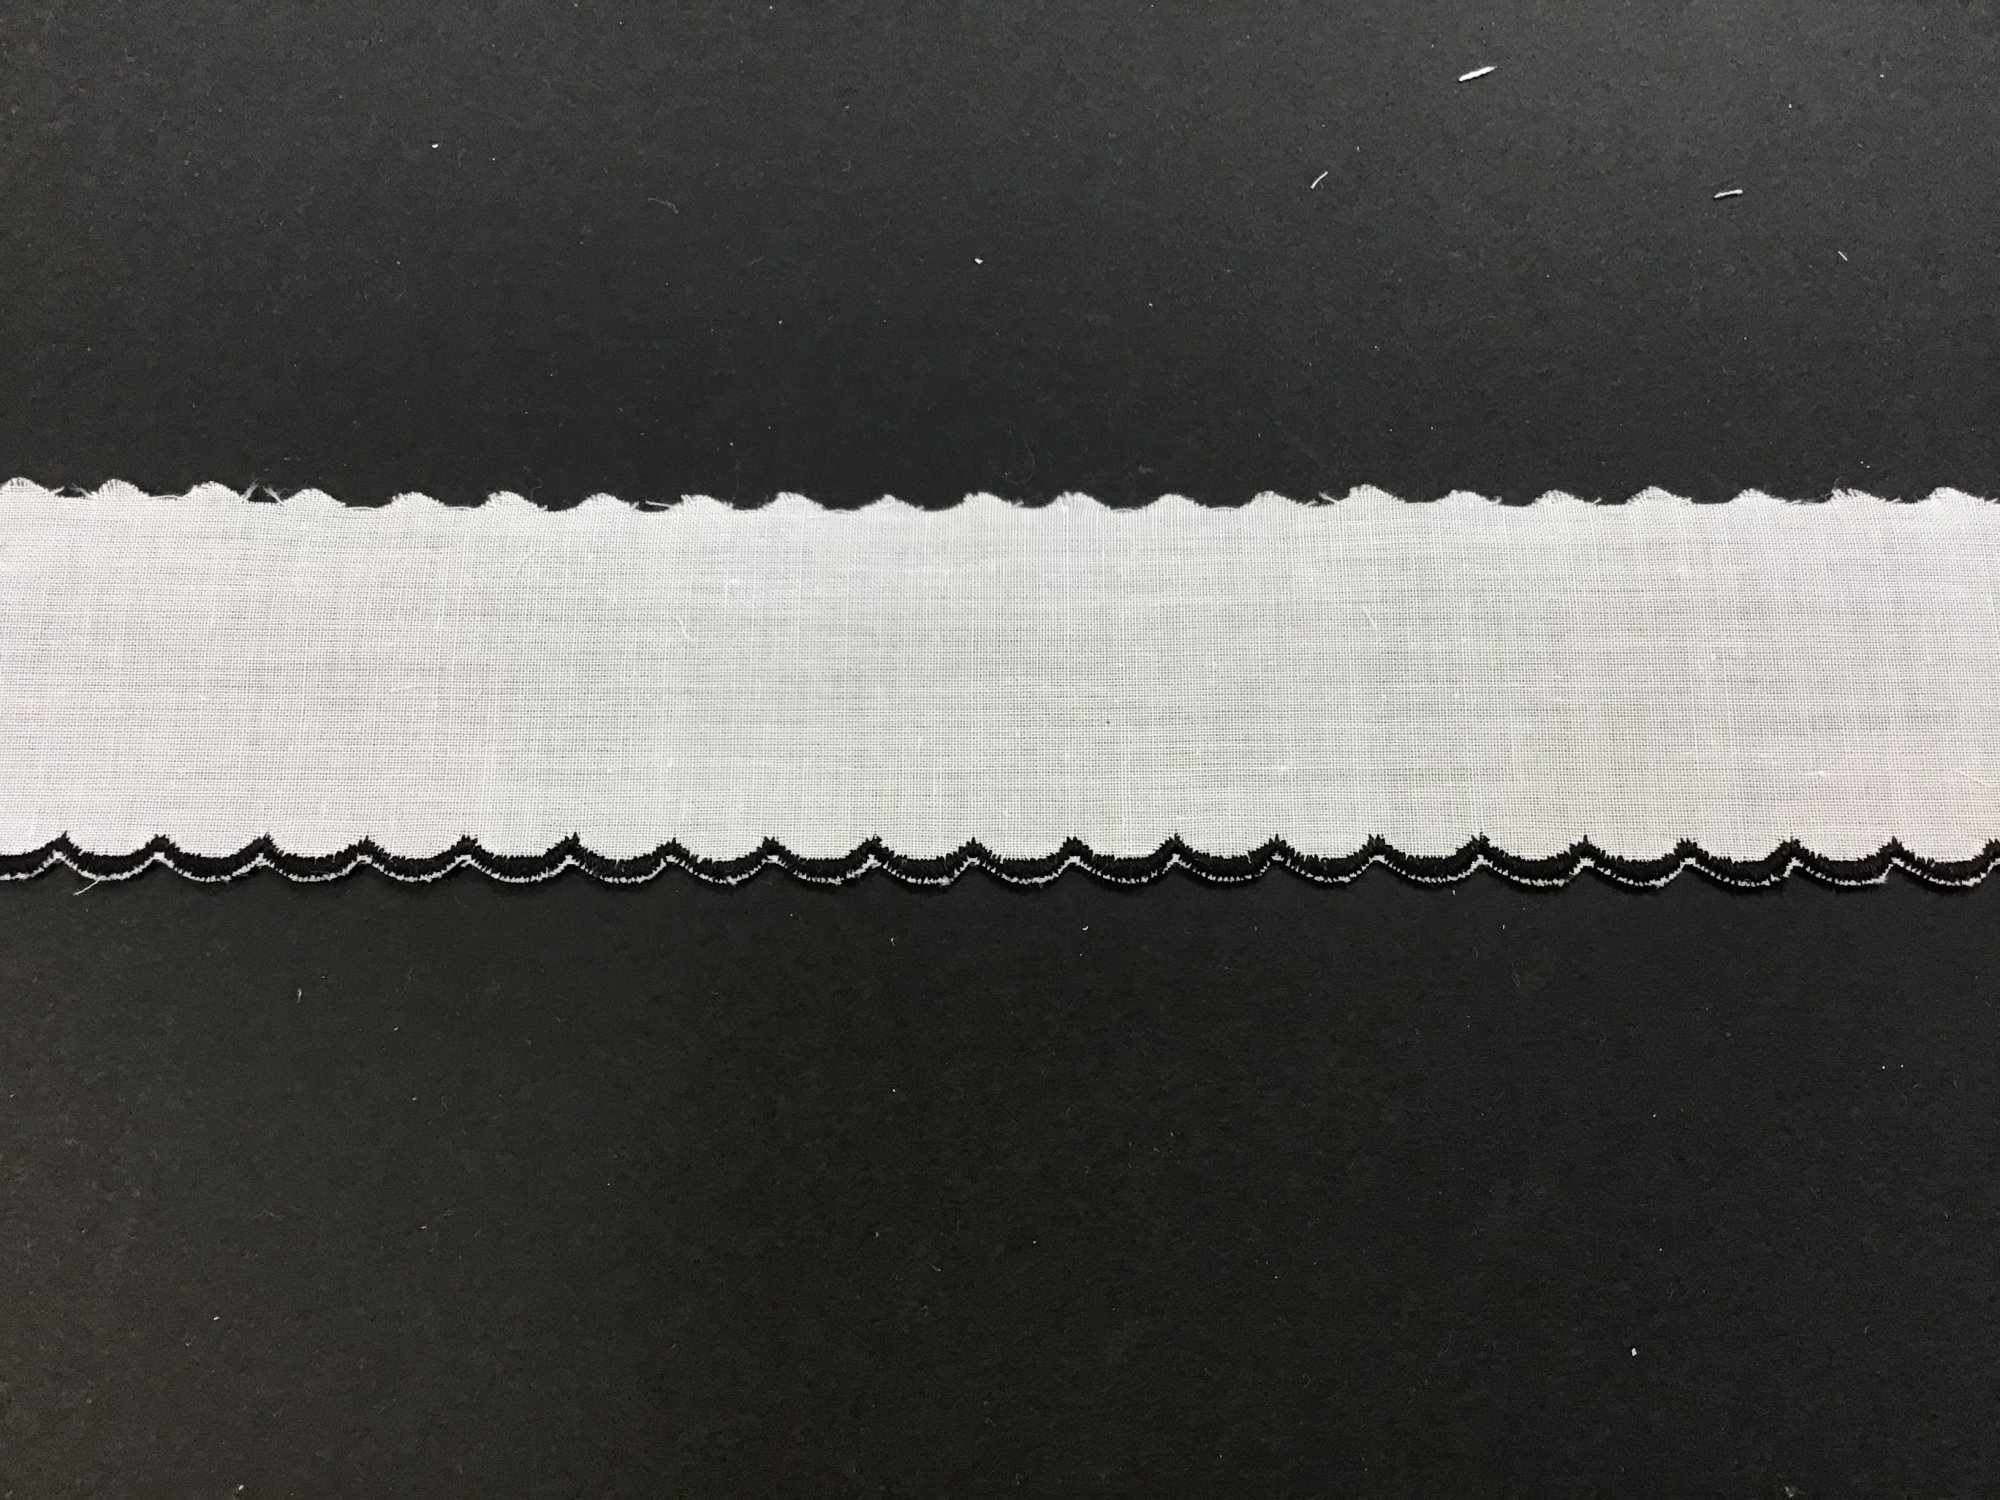 Swiss Embroidered Edging 1.5 Inch Black on White 02A